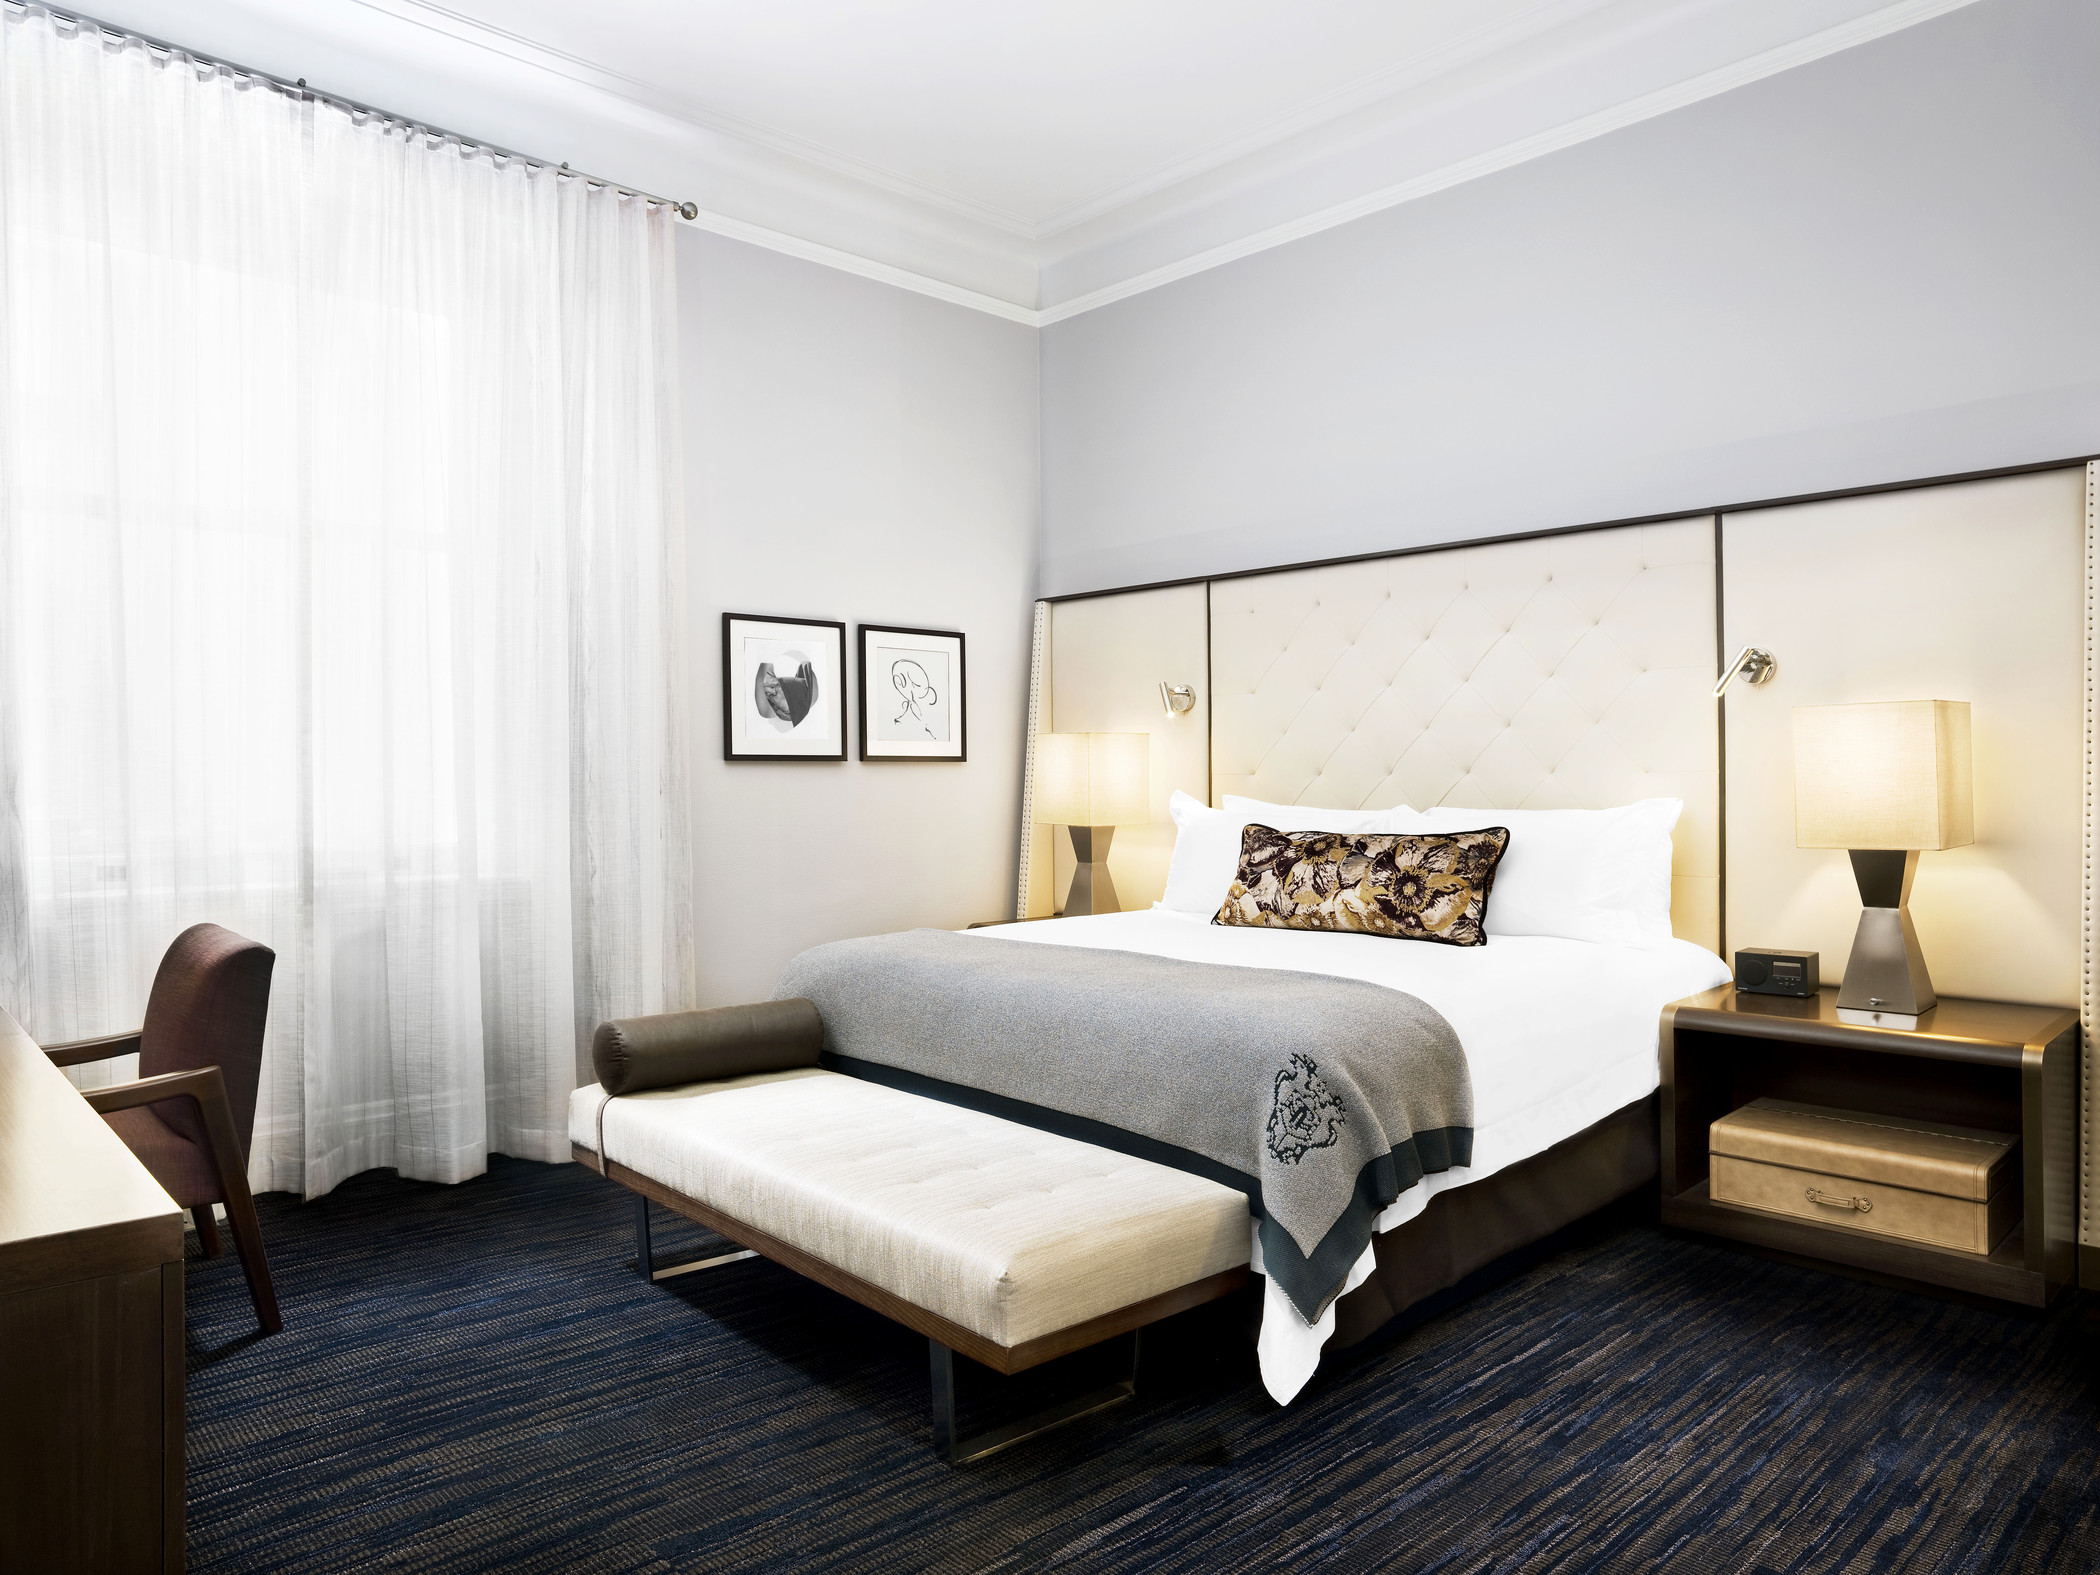 You could win a night's stay for two in a Superior Guest Room (pictured) at the Palace Hotel in San Francisco